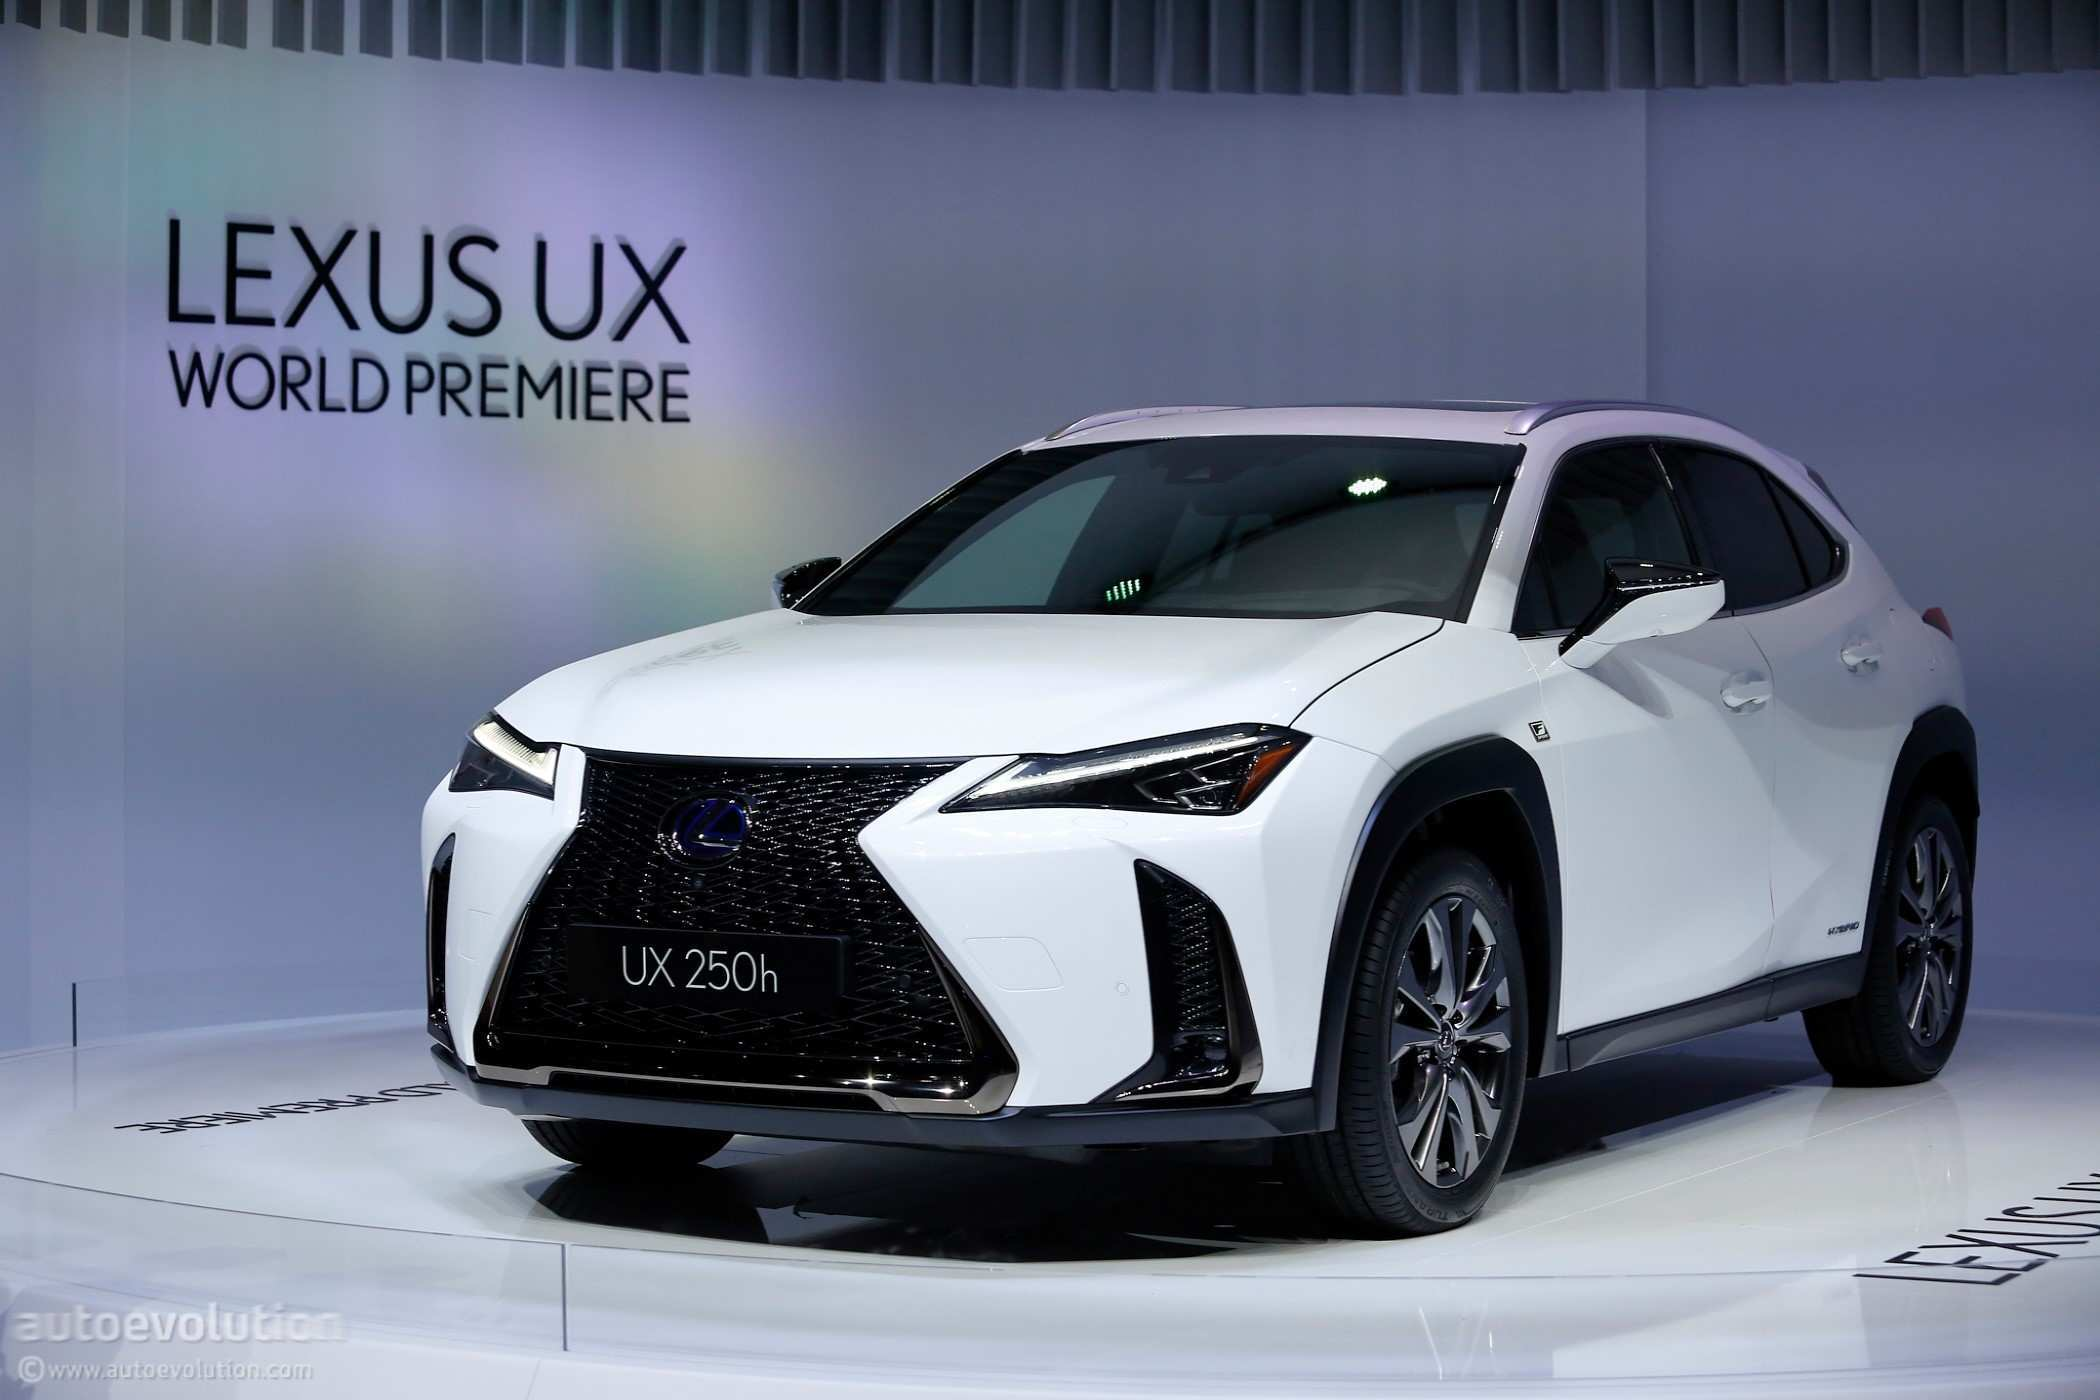 90 Gallery of Lexus 2020 Suv Ux Price and Review for Lexus 2020 Suv Ux